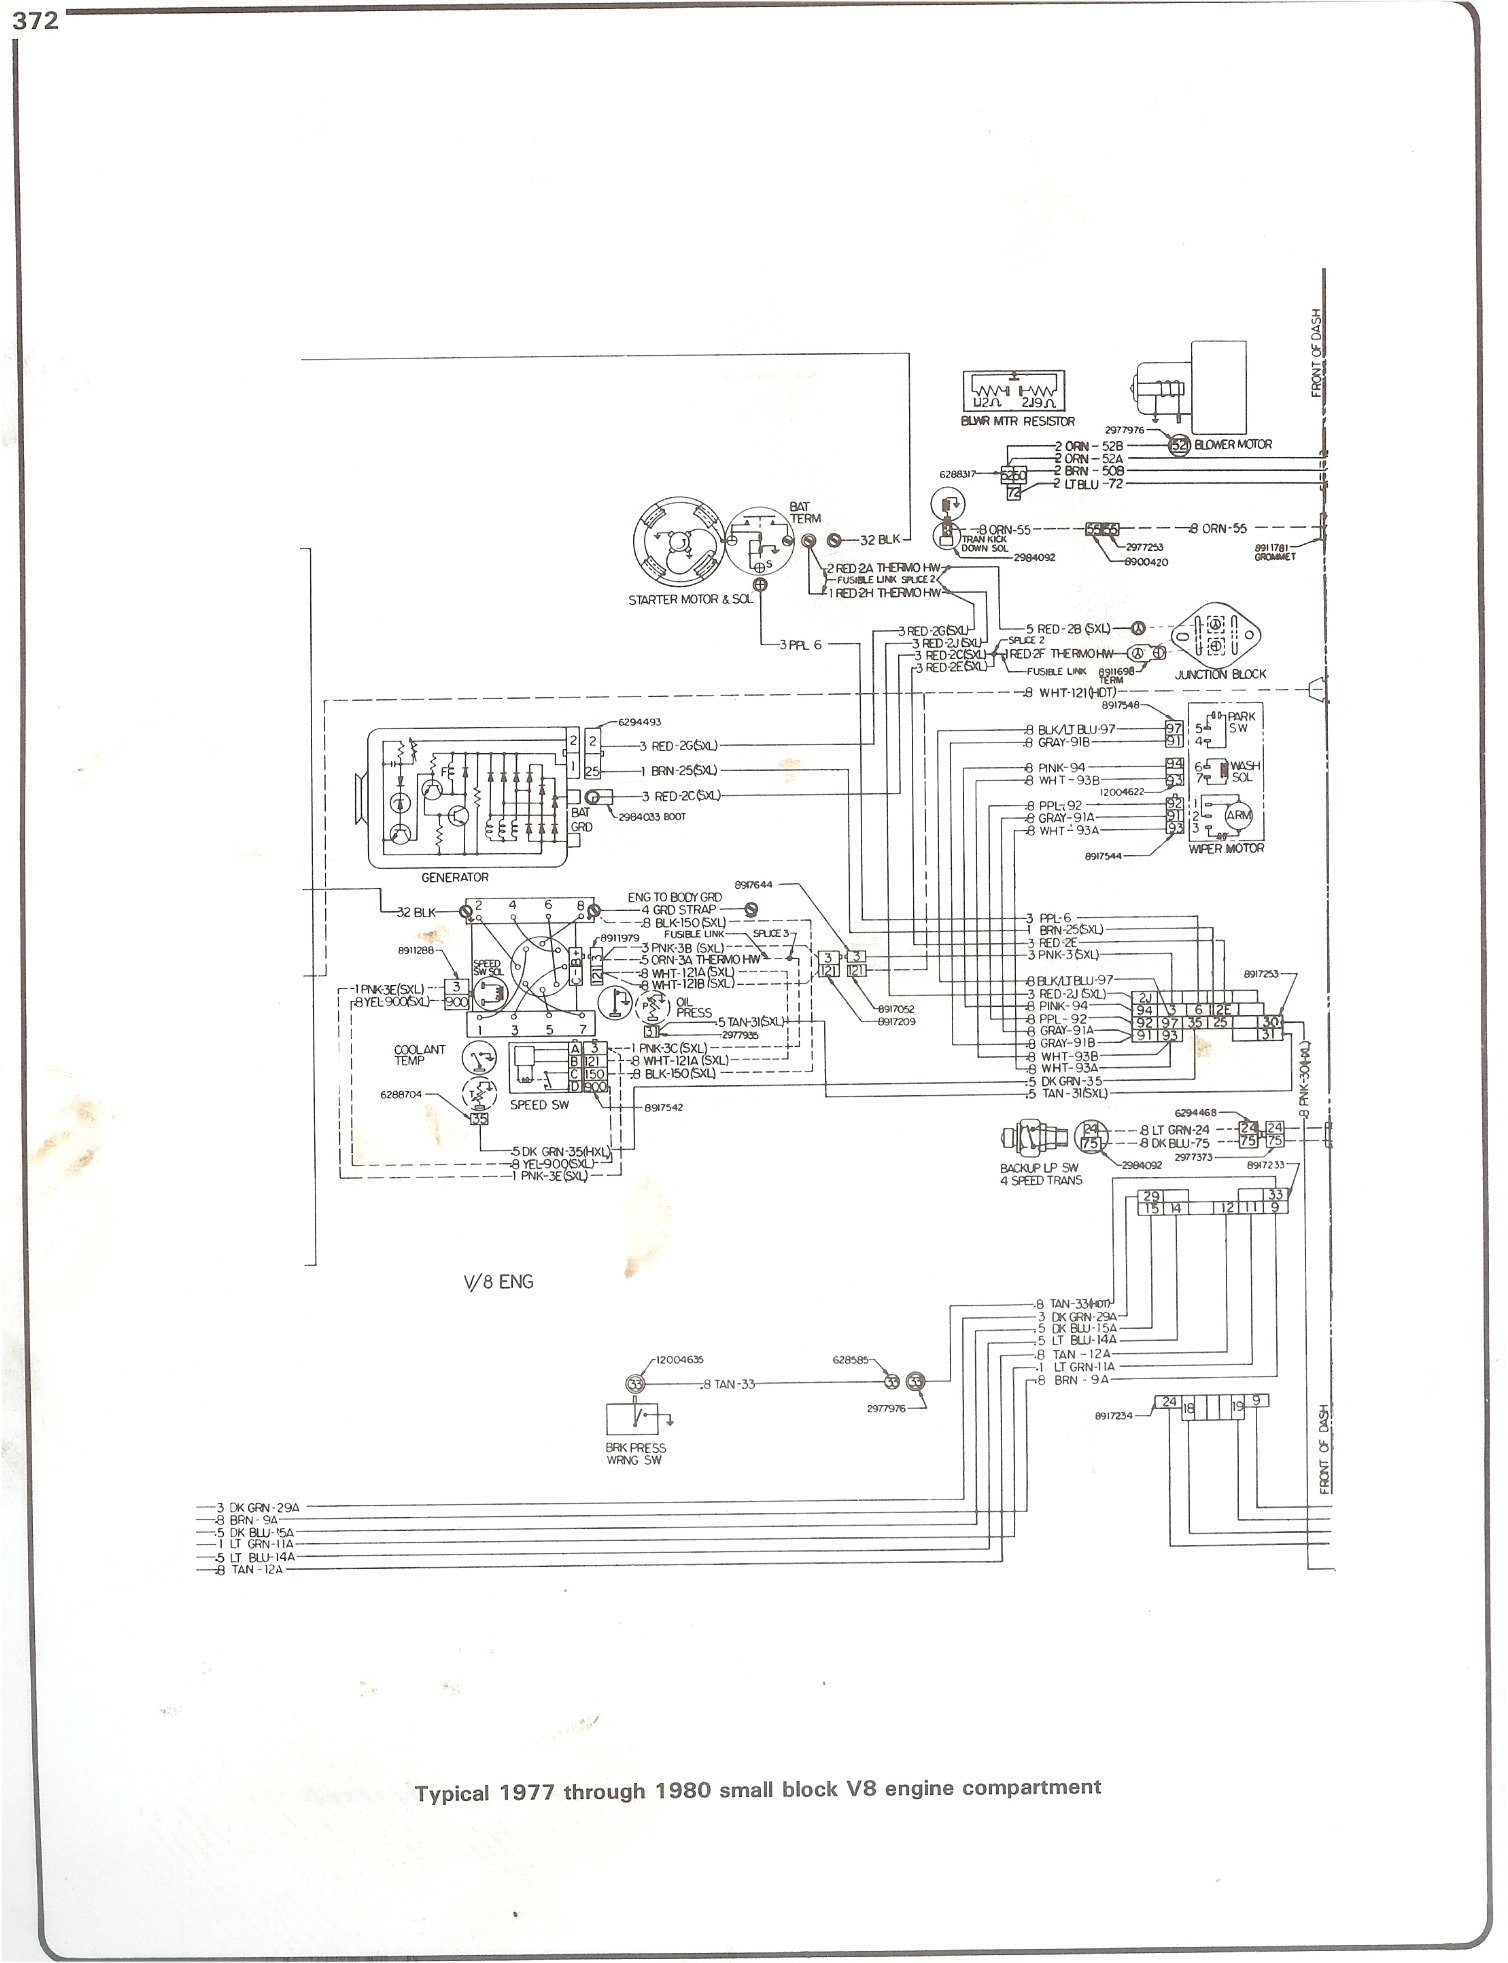 1941 chevrolet truck wiring diagram